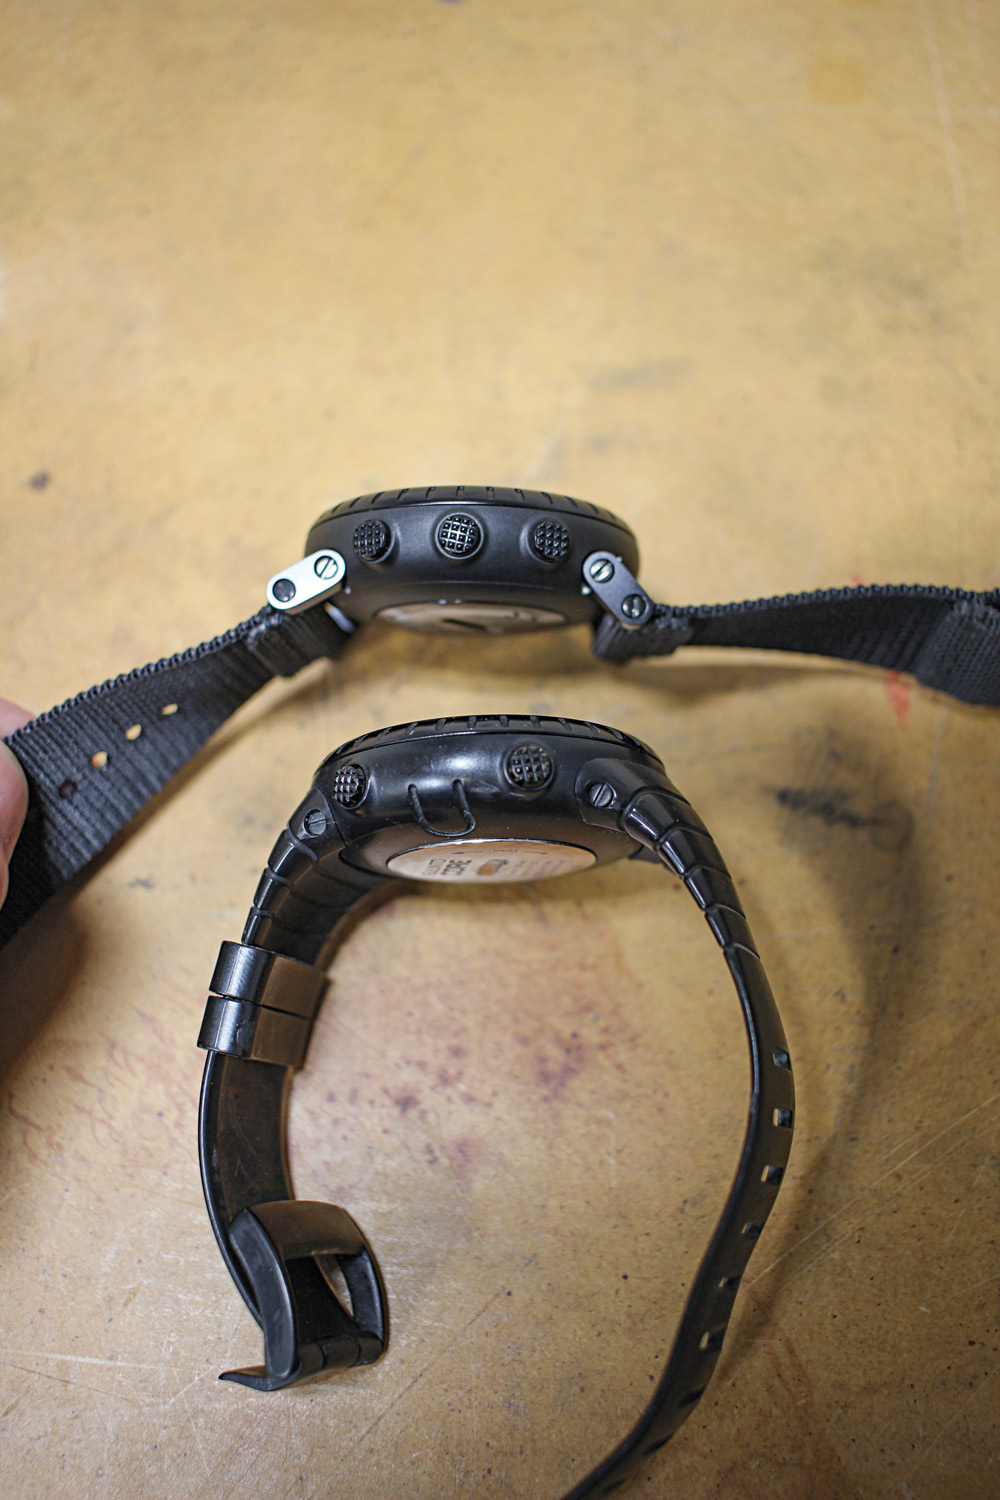 The newer hinged watch straps (top) allow you to lay the watch on a flat surface, such as a map, unlike the straps on the earlier Suunto Core model (bottom).